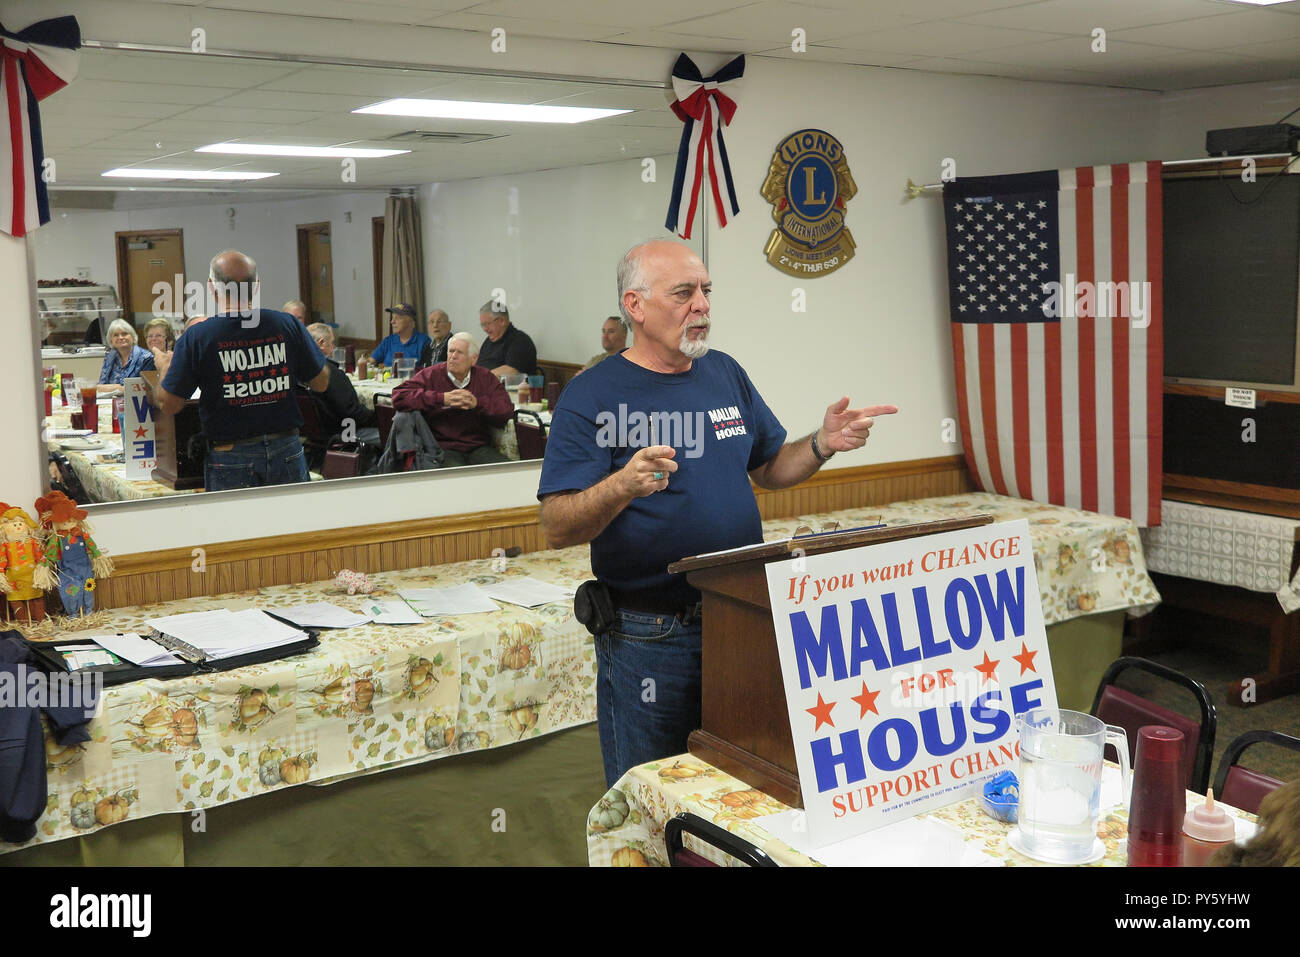 24 October 2018, US, Fairmont: Phil Mallow, Republican candidate for the West Virginia House of Representatives, speaks to supporters over lunch at Mom's Place. The 61-year-old wants to move into the House of Representatives of West Virginia for Trump's Republican. (to dpa 'One country, two worlds - How Trump splits America' on 26.10.2018) Photo: Can Merey/dpa - Stock Image